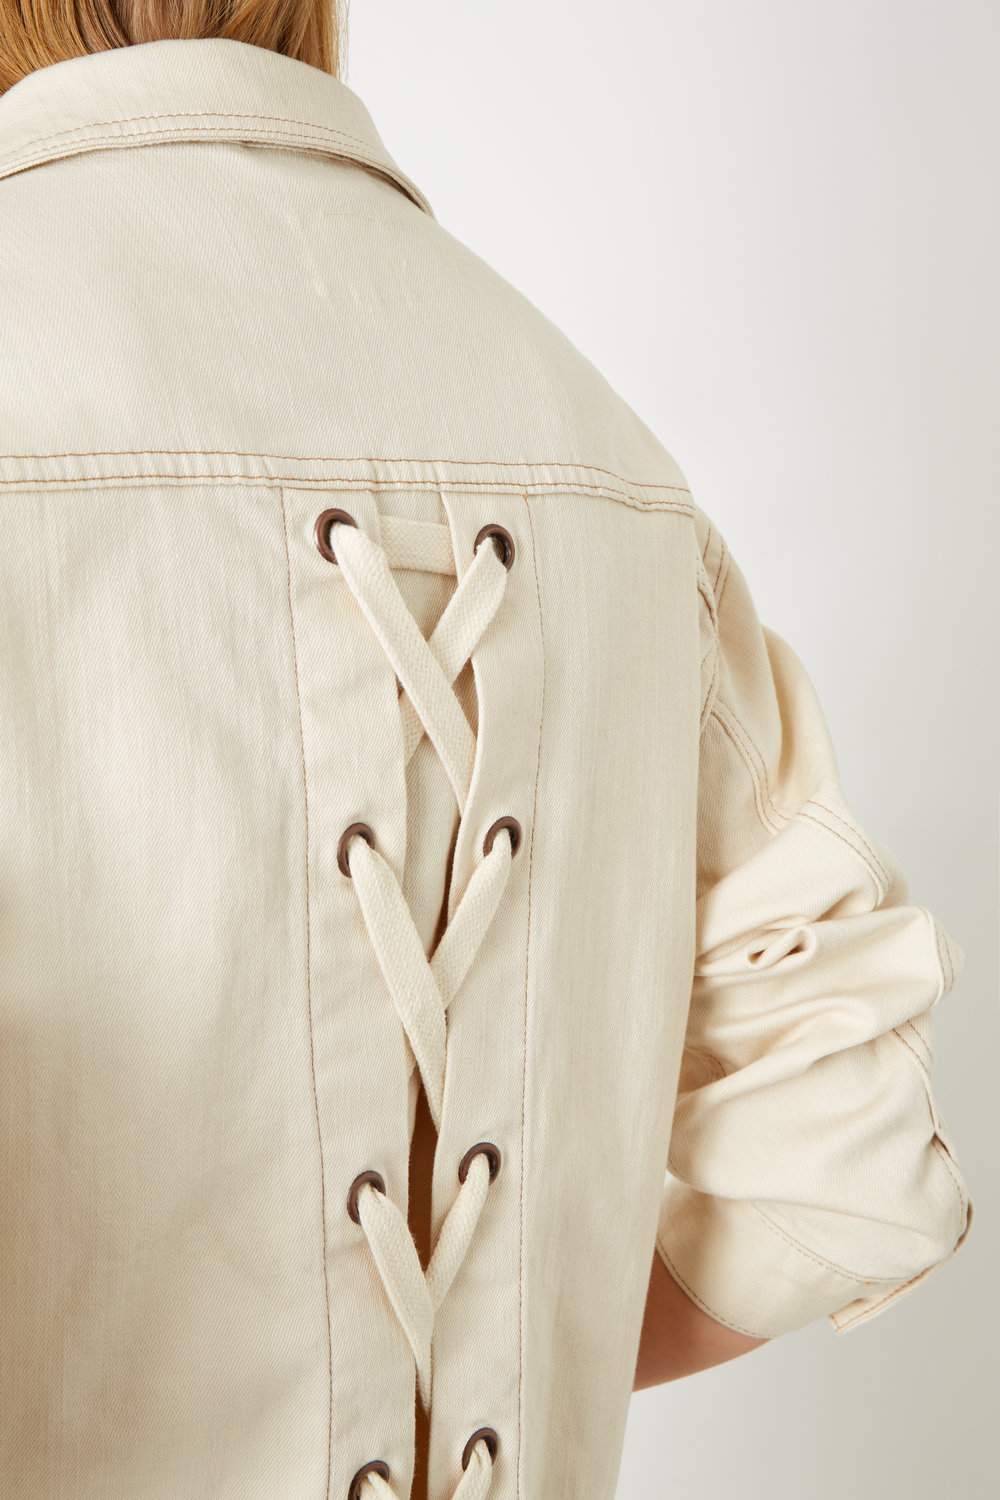 3 pack laces: Ivory White Lace Back Sustainable Denim Jacket £215